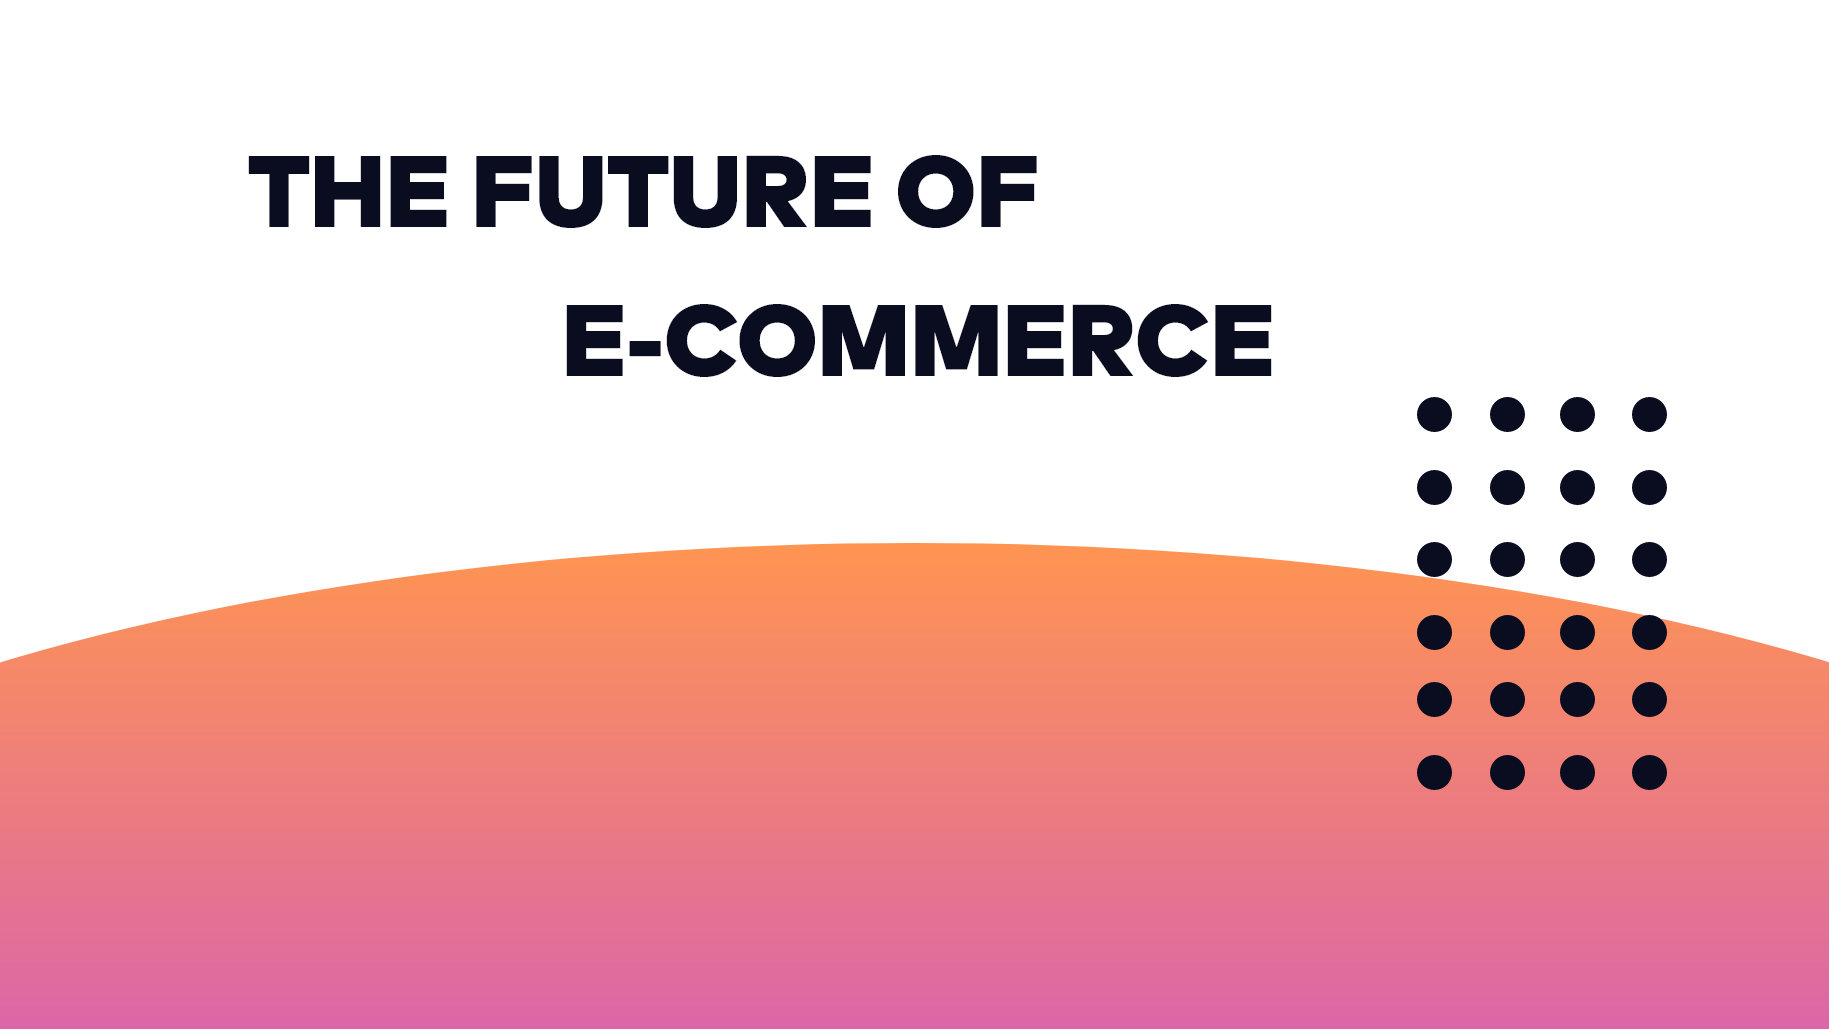 Live Streaming eCommerce is the Future